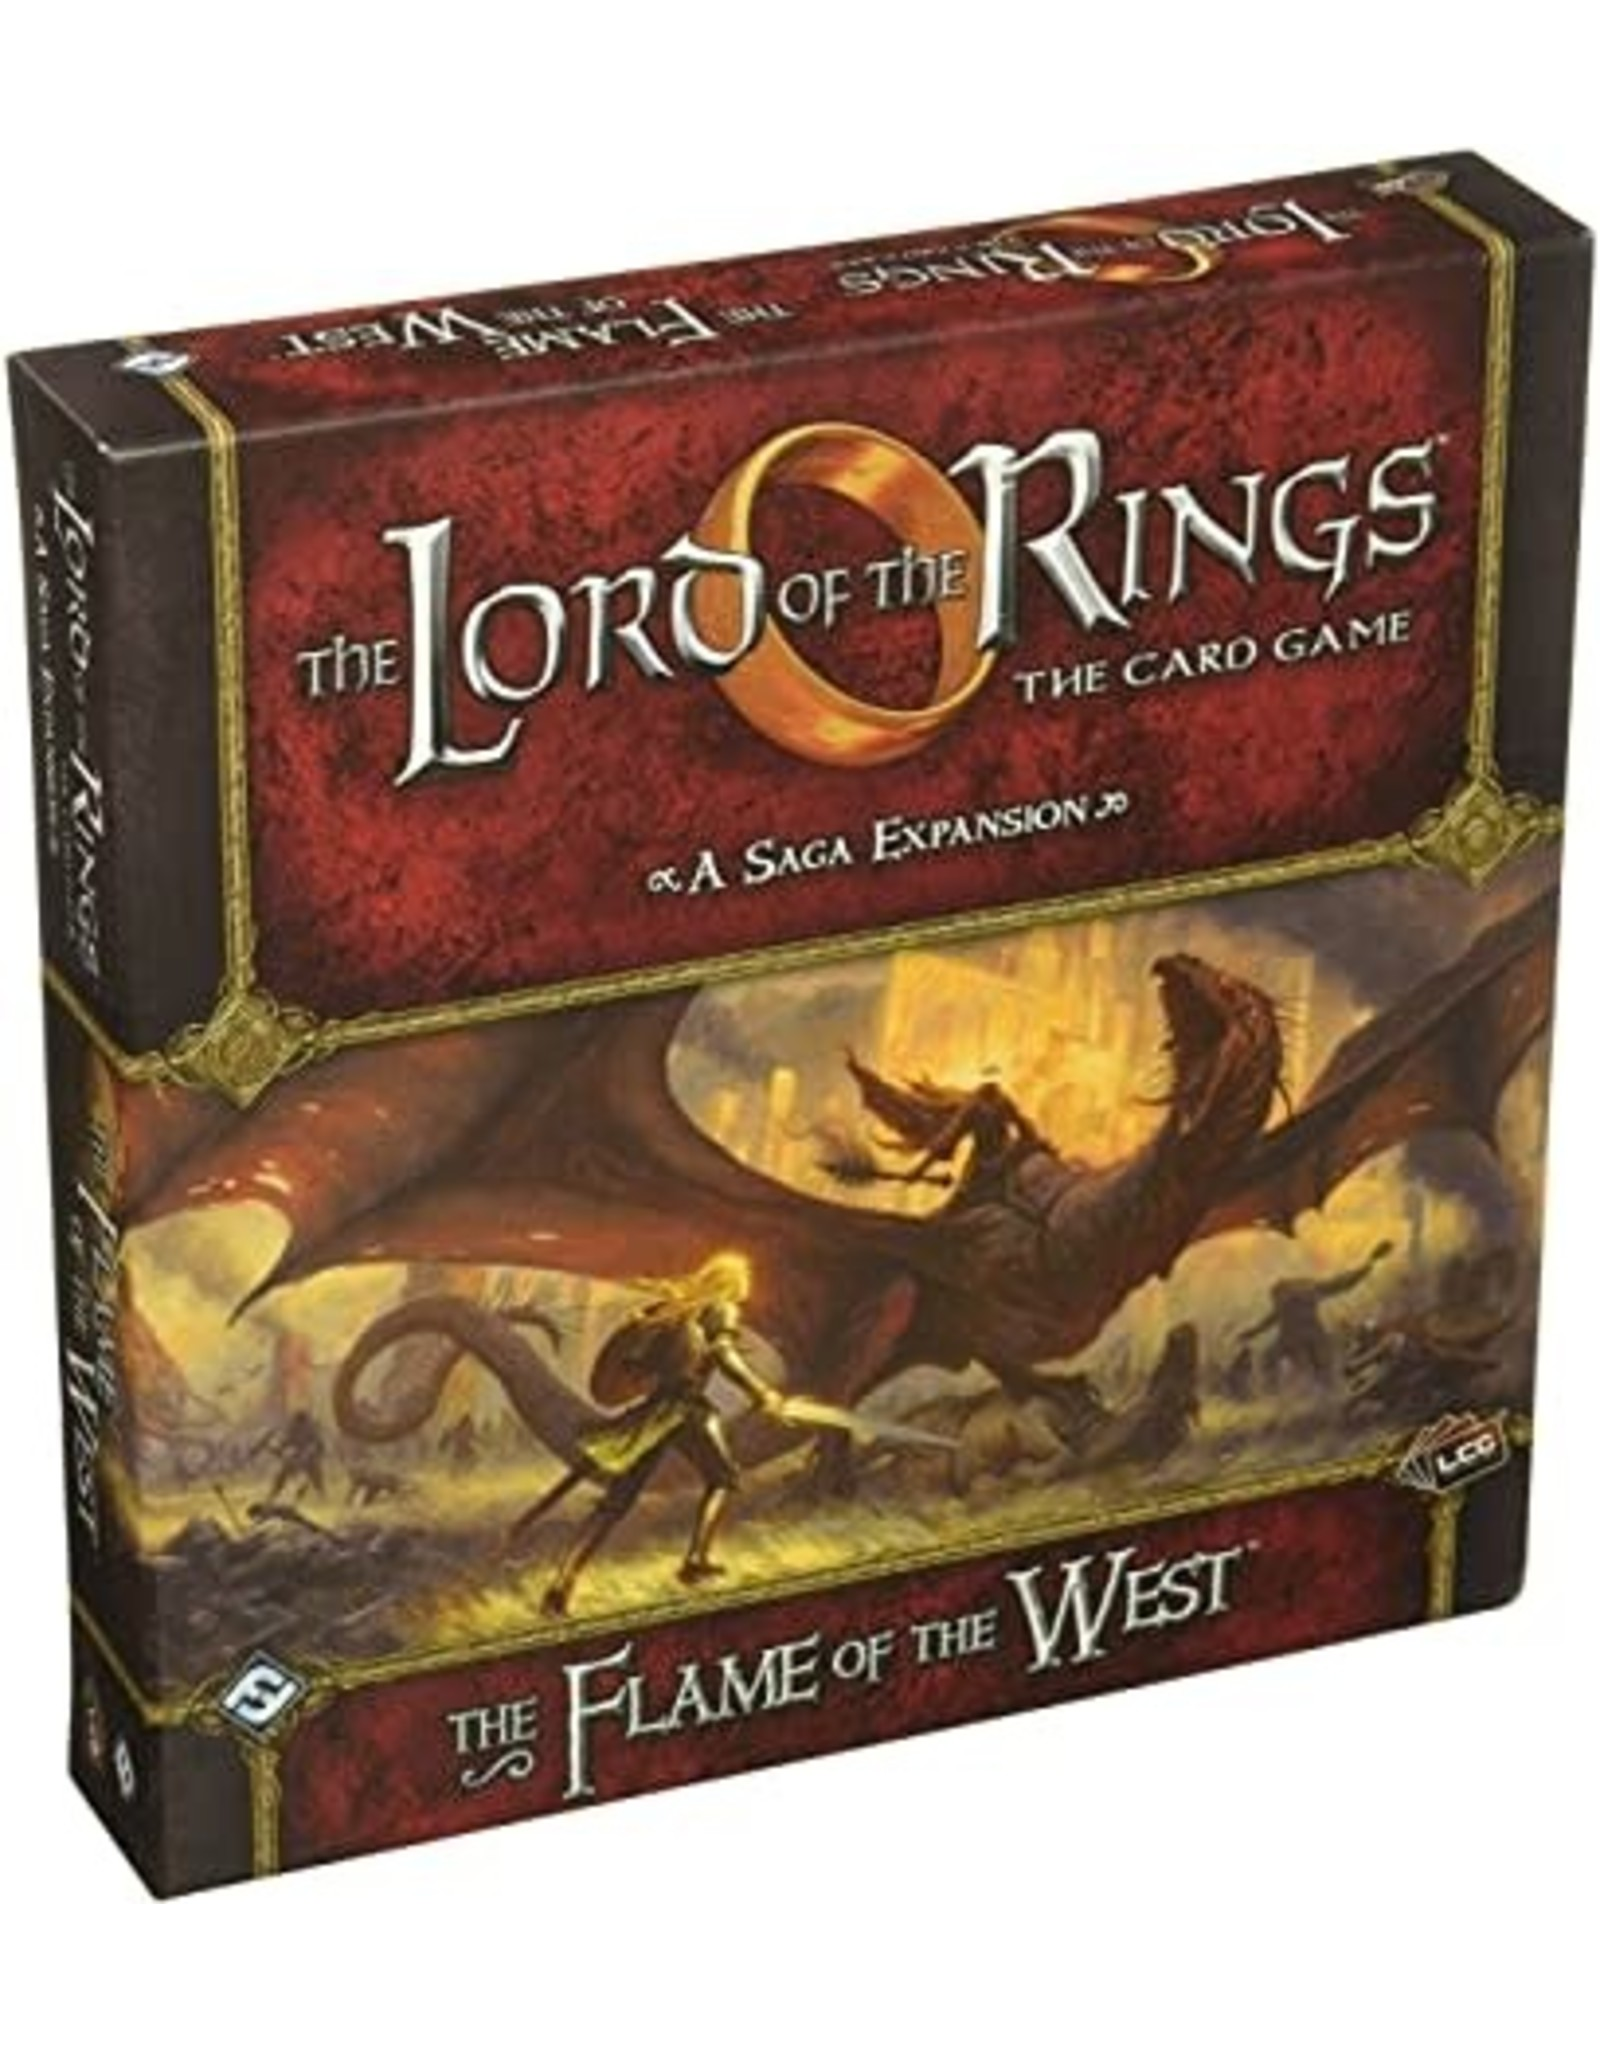 The Lord of the Rings LCG: The Flame of the West Saga Expansion